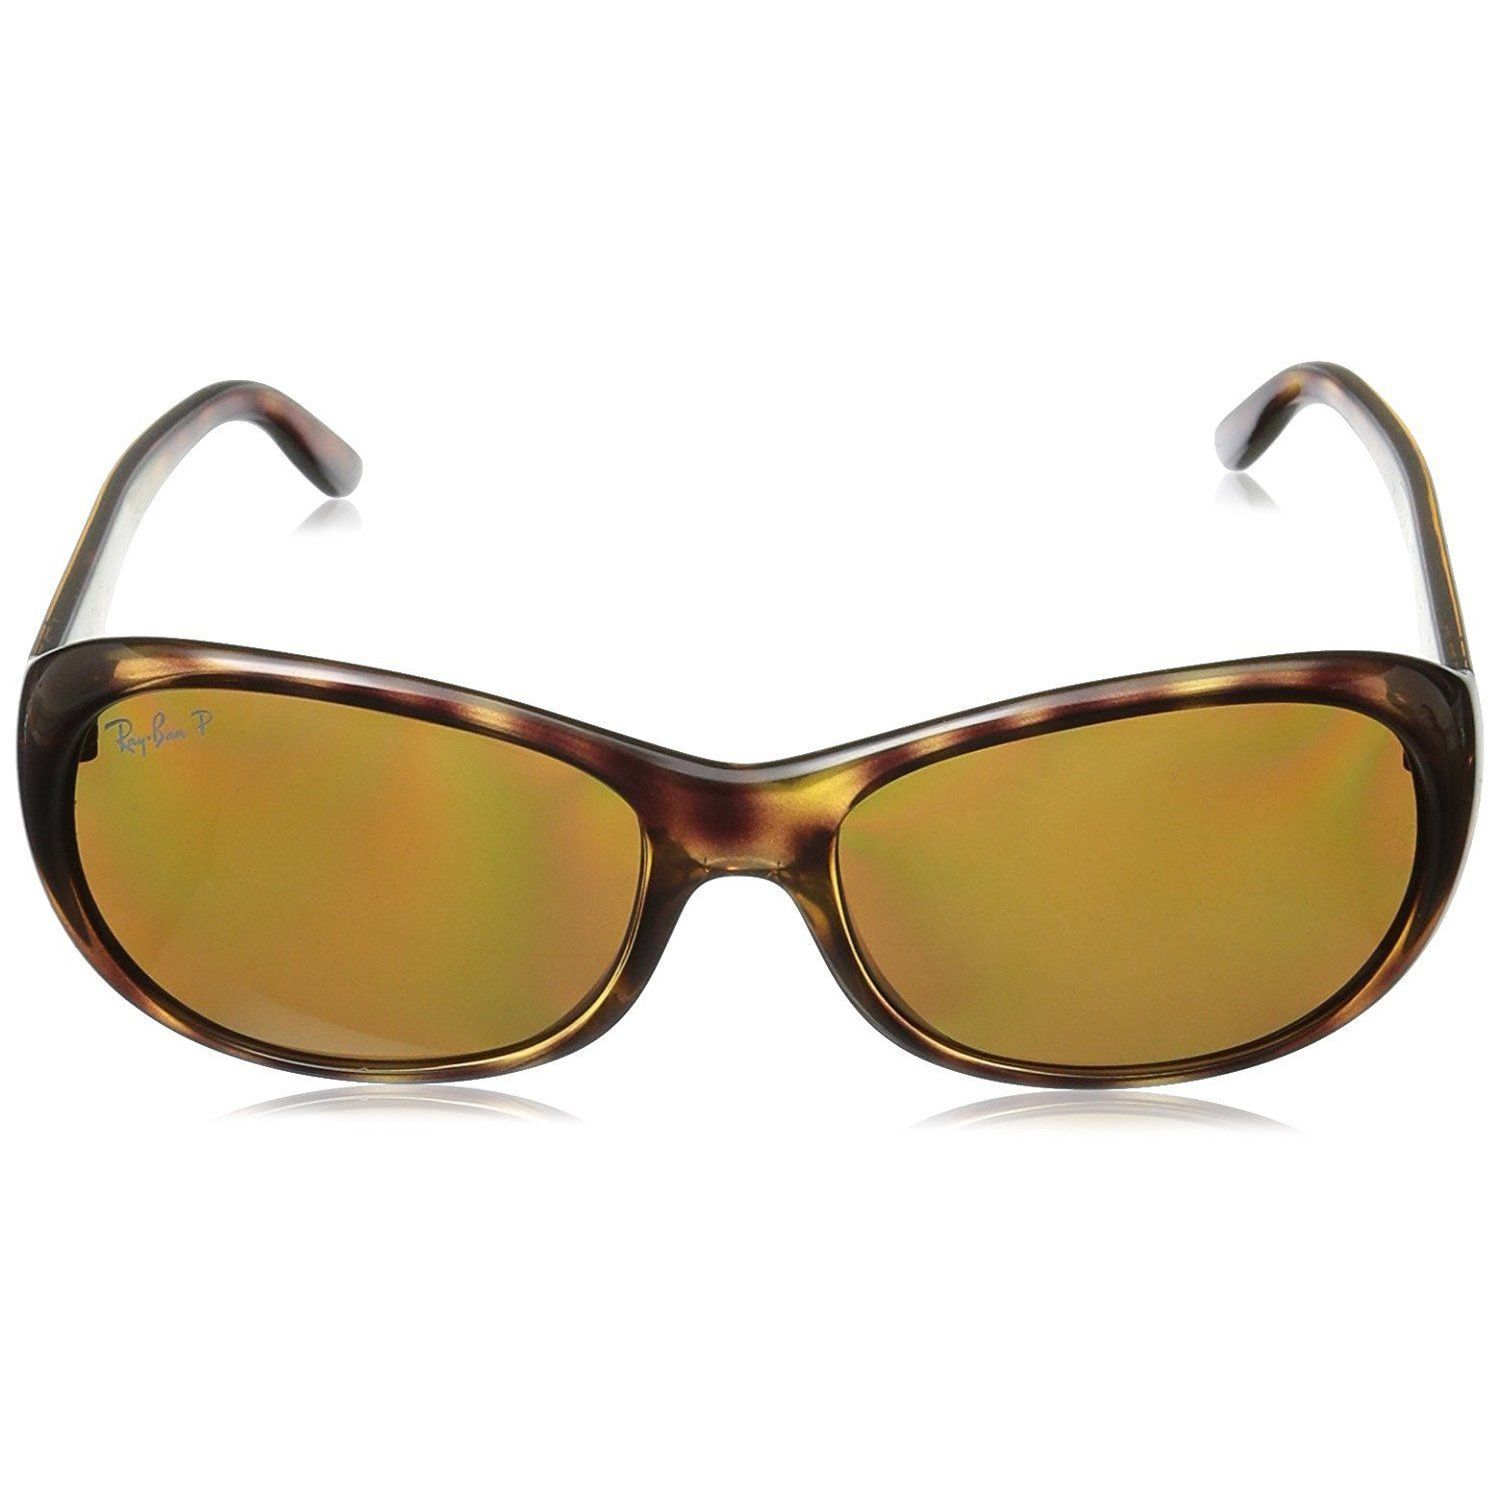 b1ee0f1544 Shop Ray-Ban RB4061 642 57 Women s Tortoise Frame Polarized Brown 55mm Lens  Sunglasses - Free Shipping Today - Overstock - 15287693